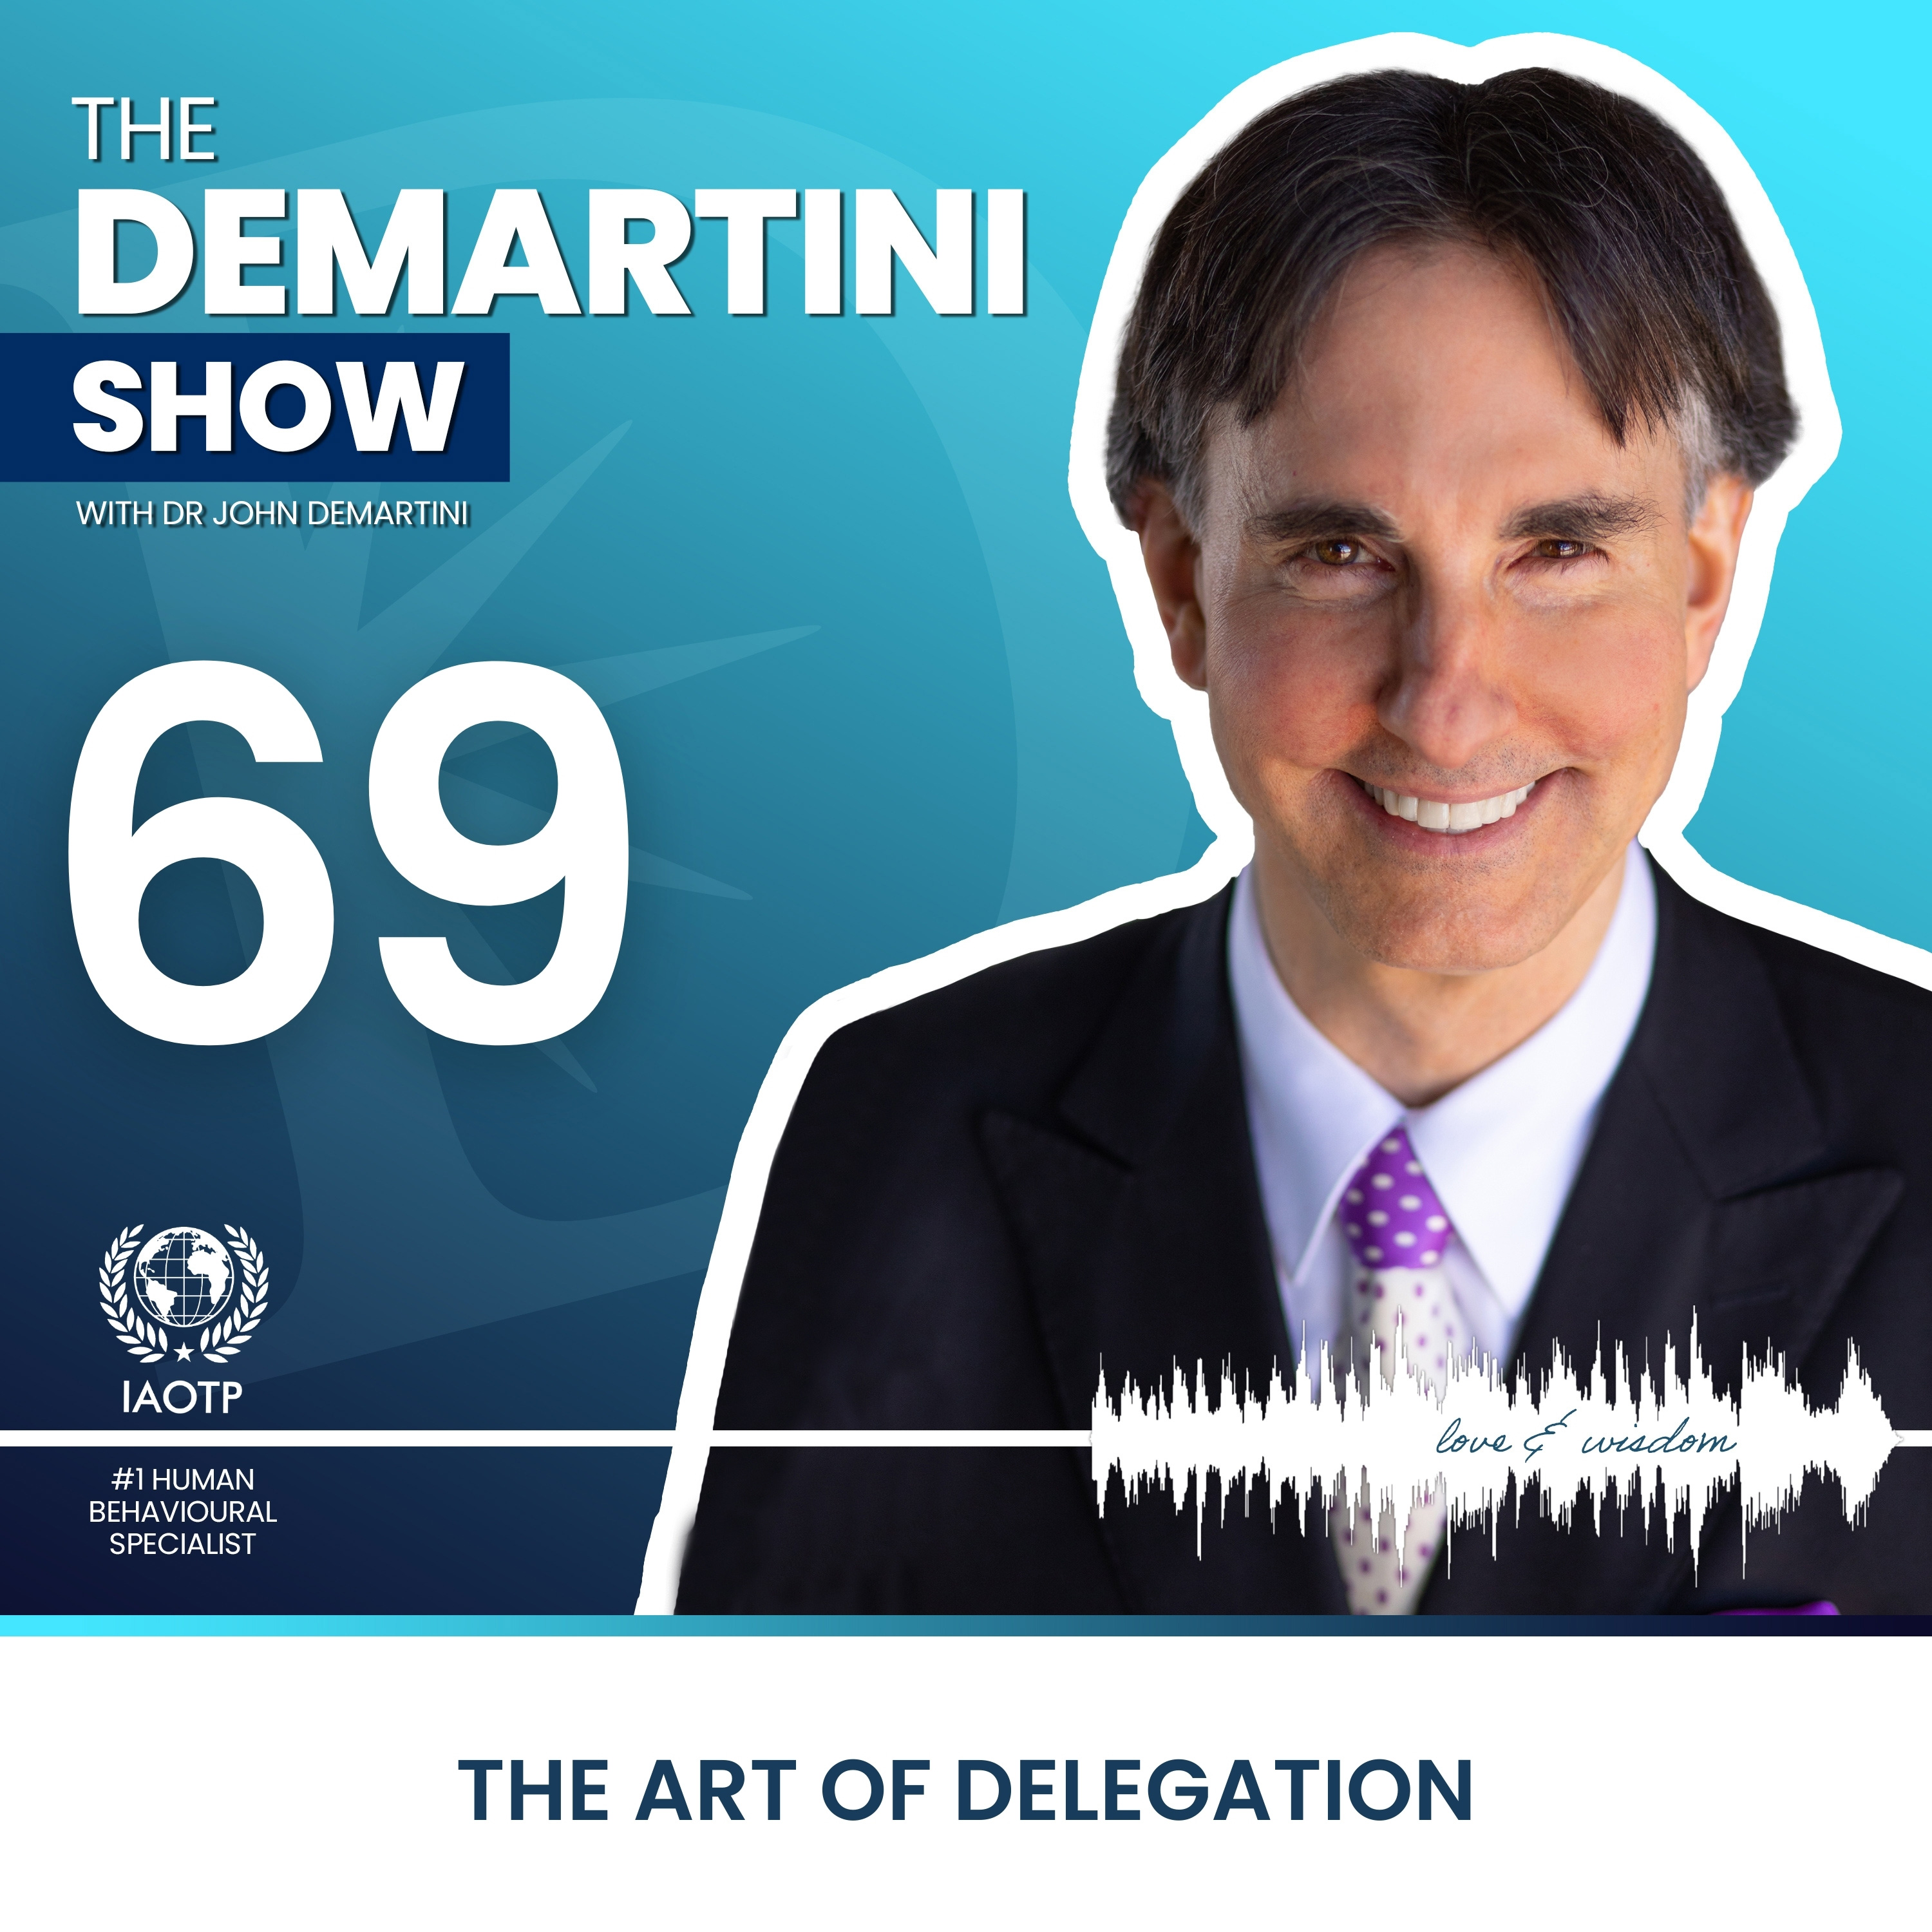 EP69 - Art of Delegation - The Demartini Show